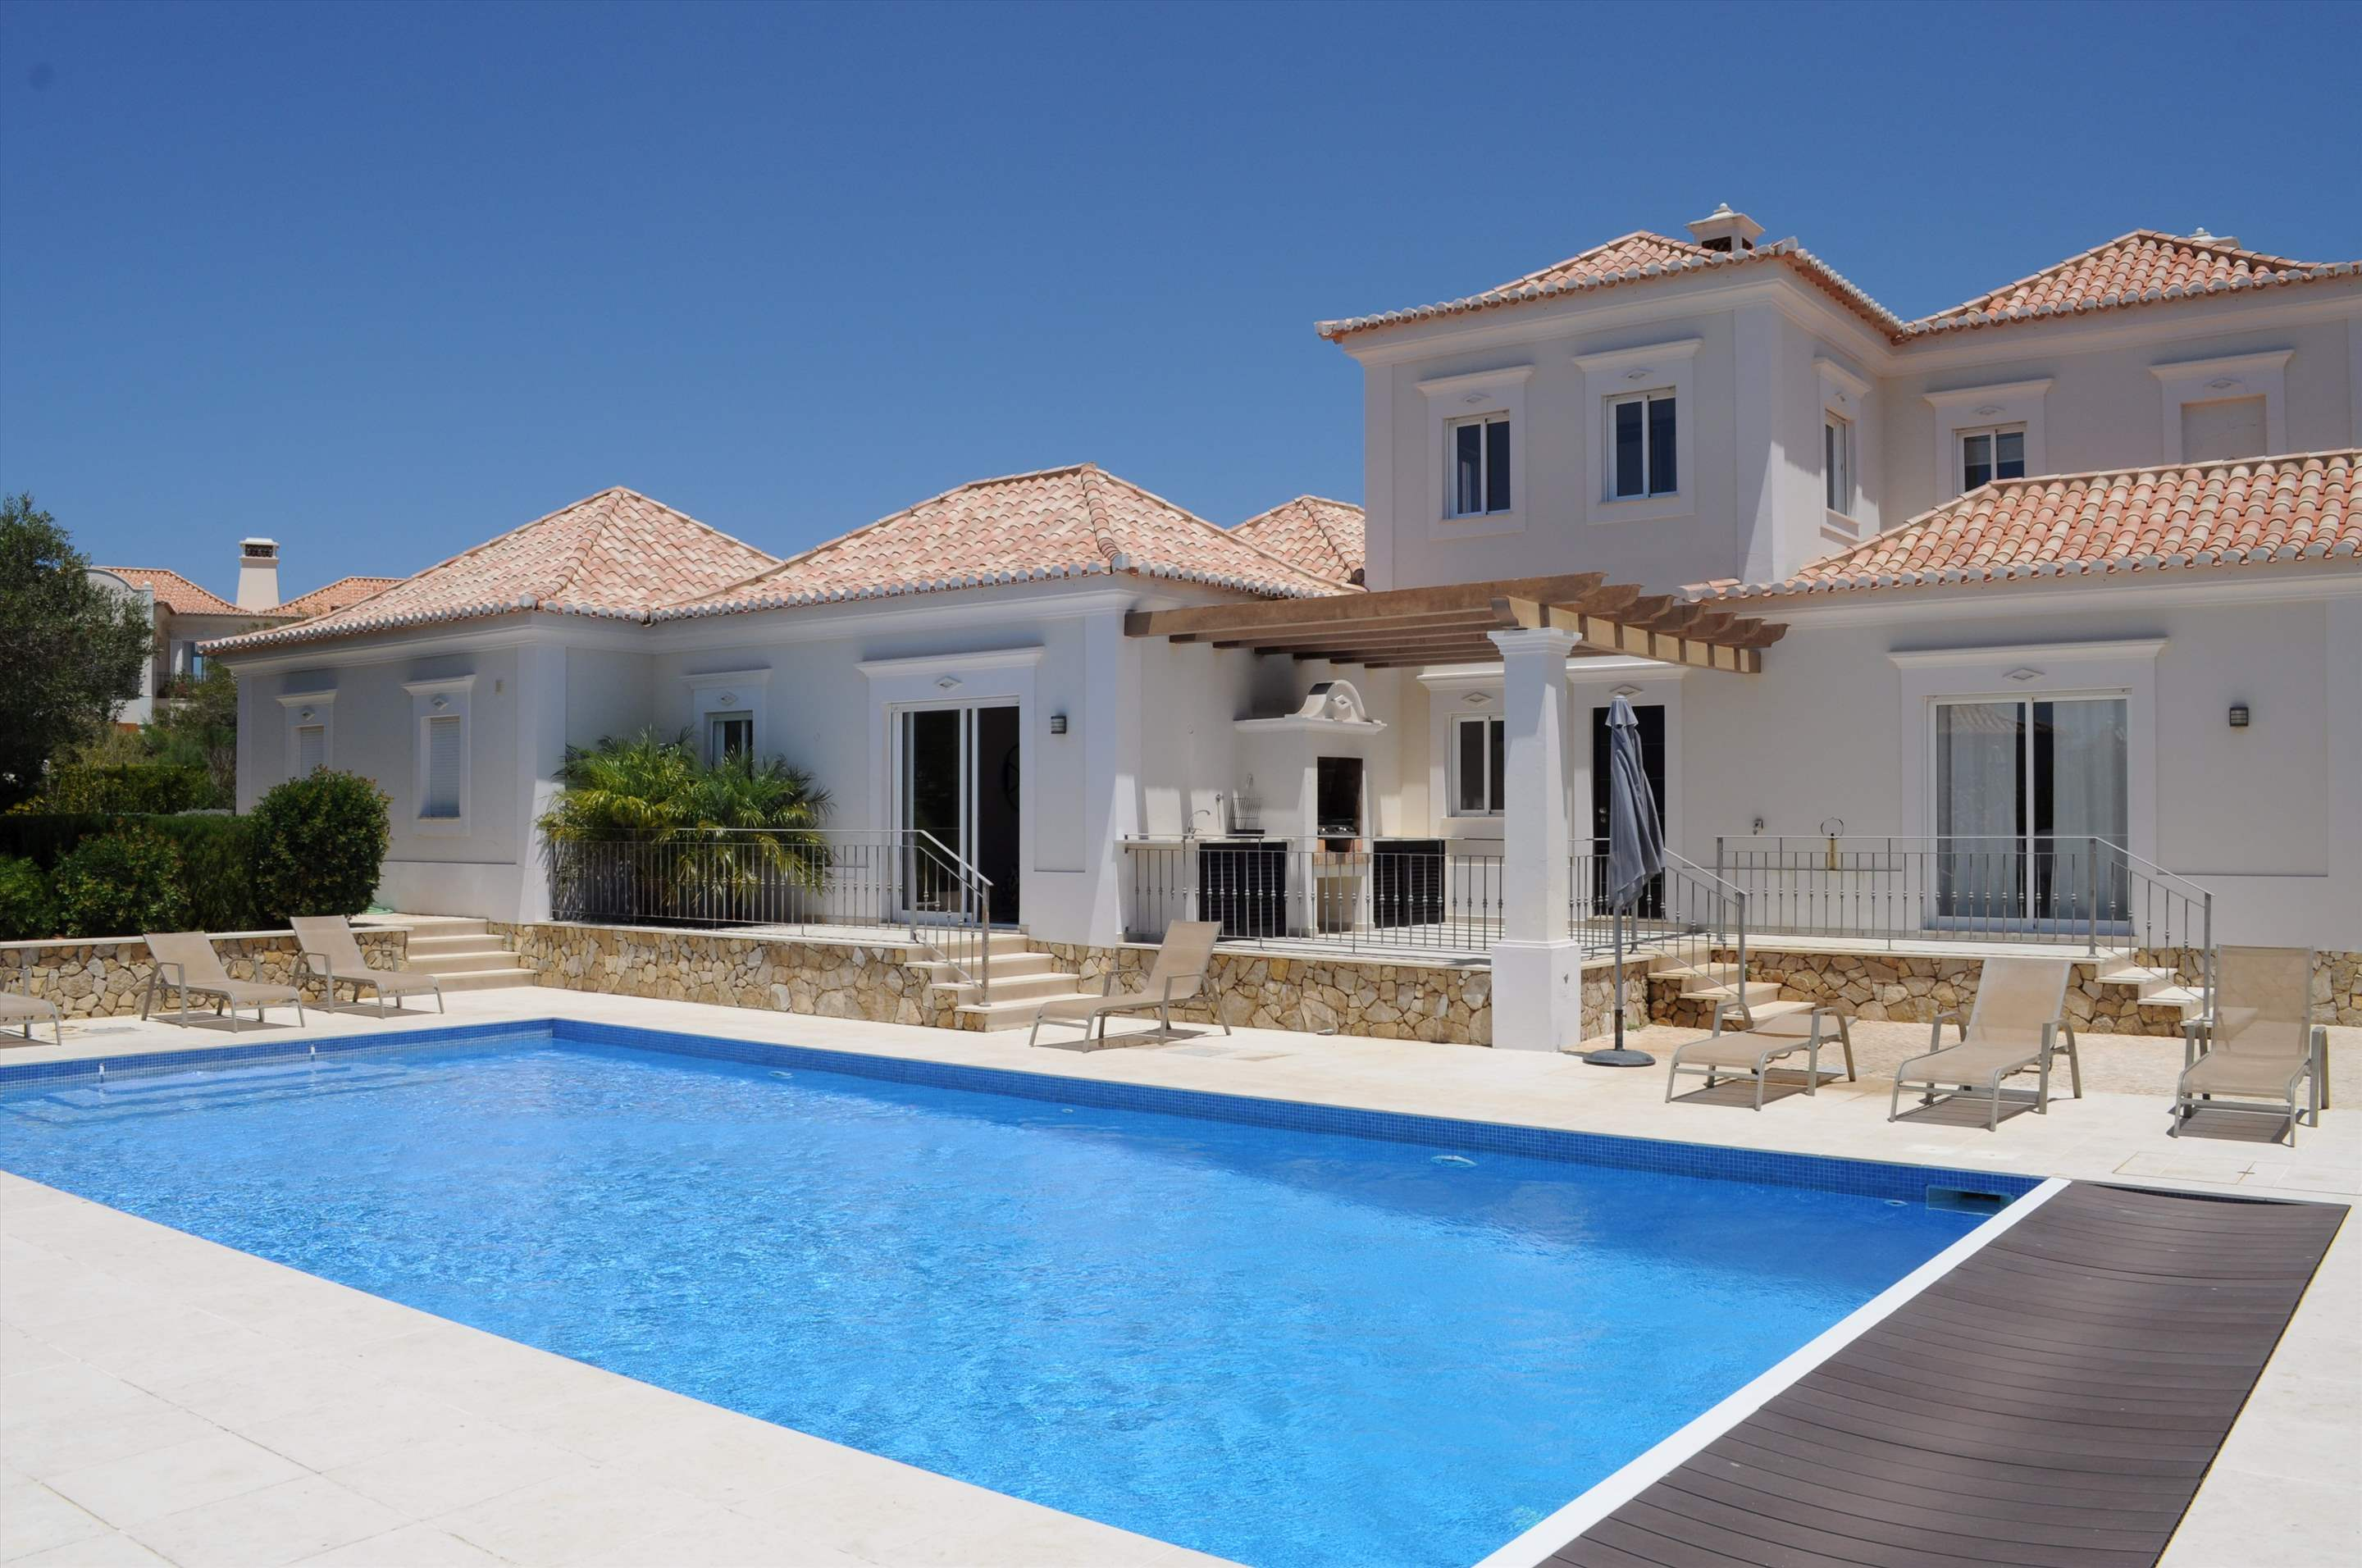 Martinhal Luxury Villa No.18, 5 bedroom villa in Martinhal Sagres, Algarve